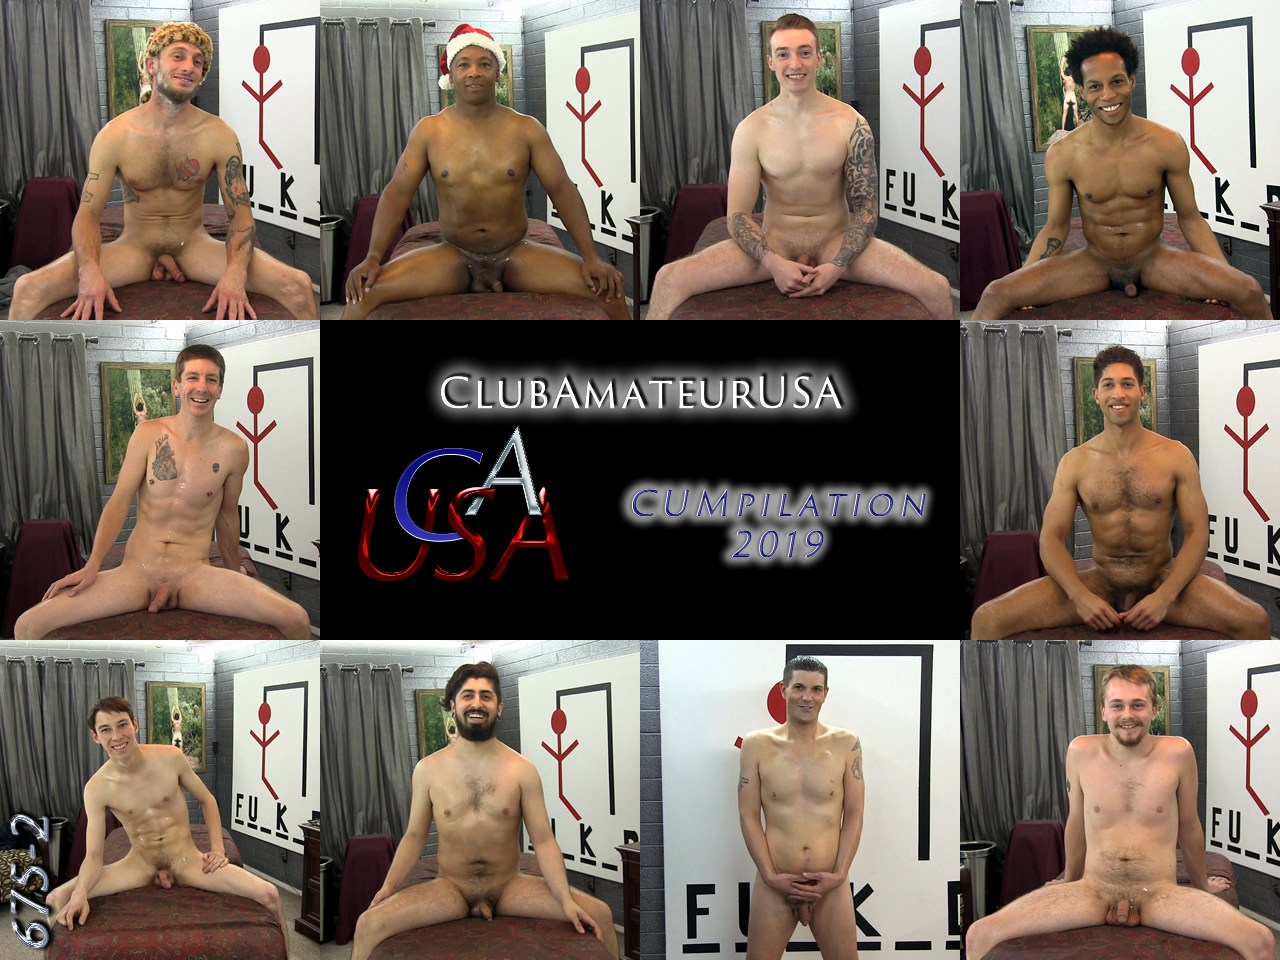 Download or Stream CAUSA 675 CUMpilation 2019 - 2 of 4 - Click Here Now